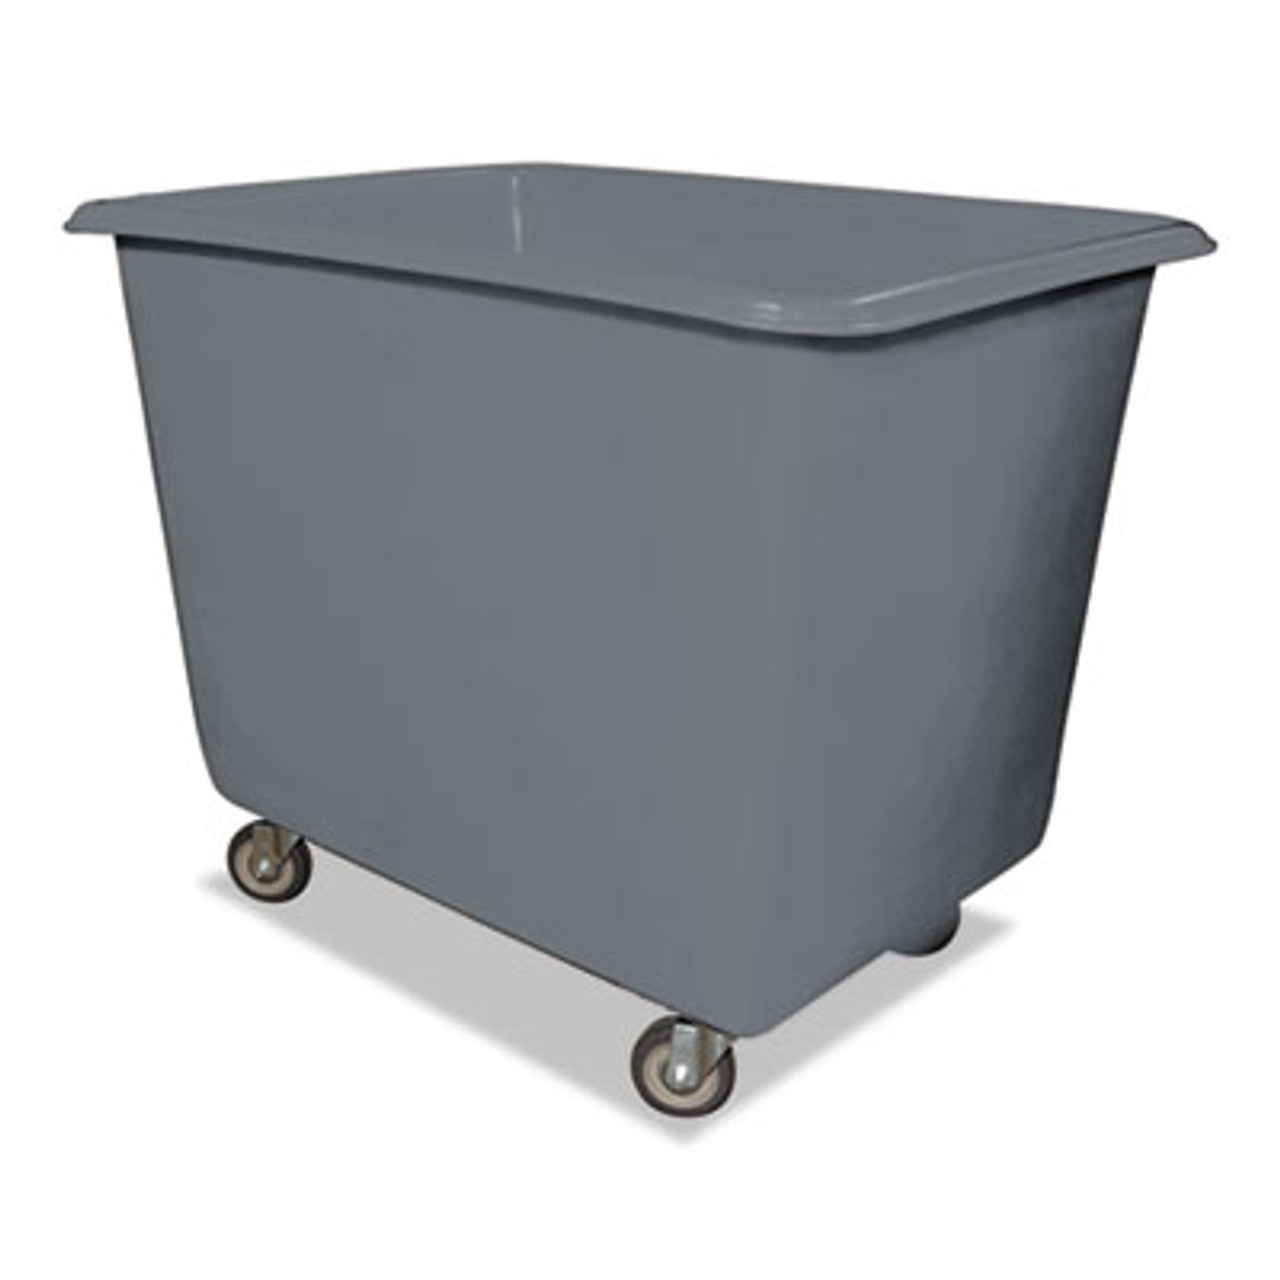 Royal 12 Bushel Poly Truck w/Galvanized Steel Base, 30 x 40 x 33, 800 lbs. Cap., Gray